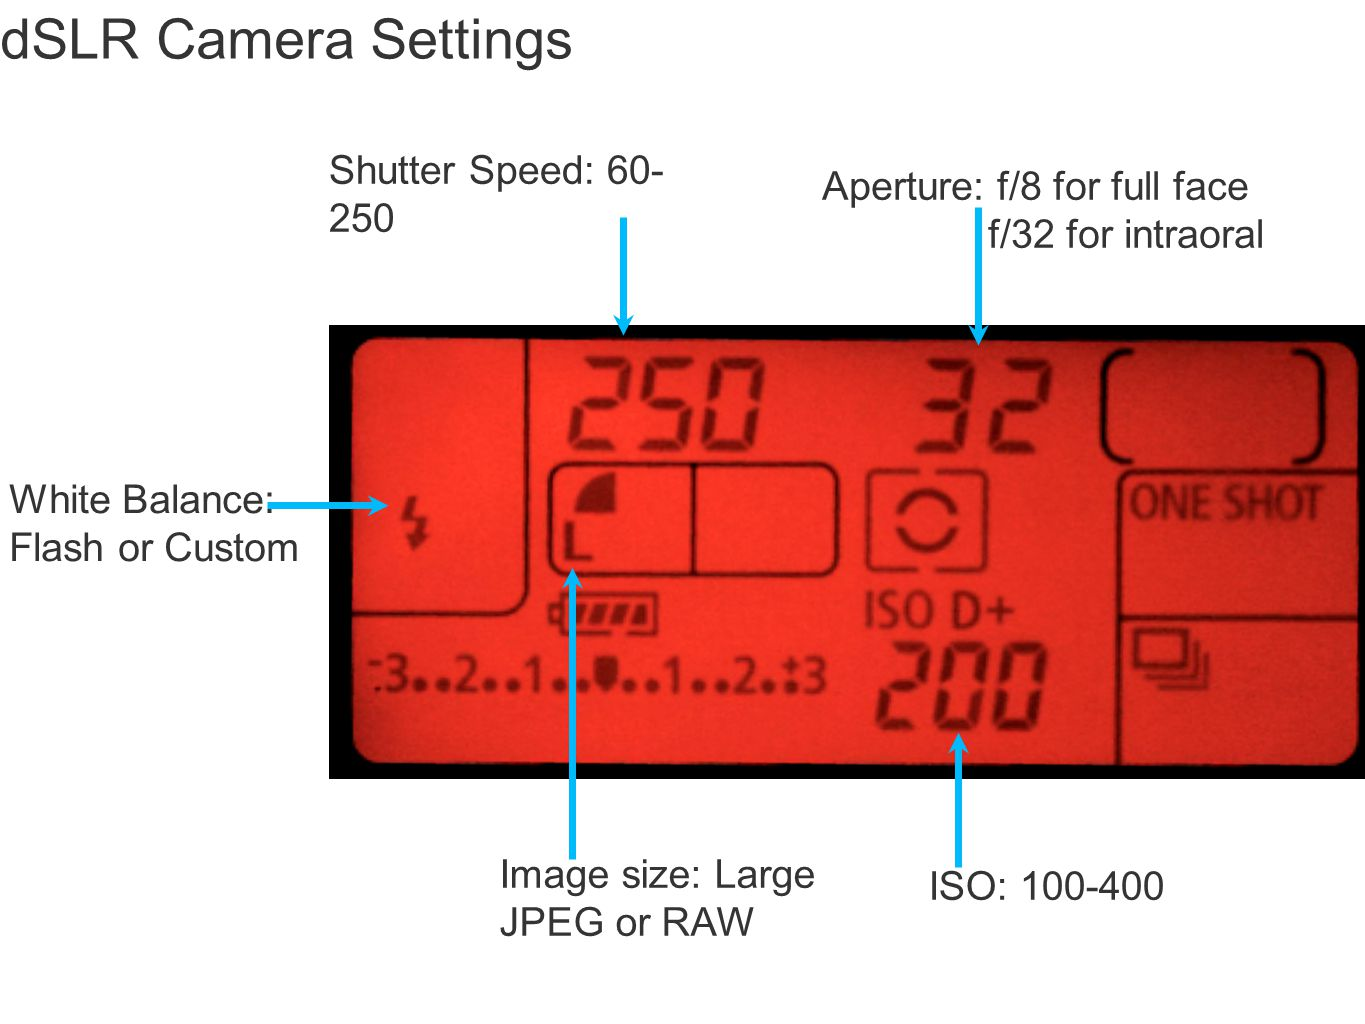 dSLR Camera Settings Shutter Speed: 60-250 Aperture: f/8 for full face